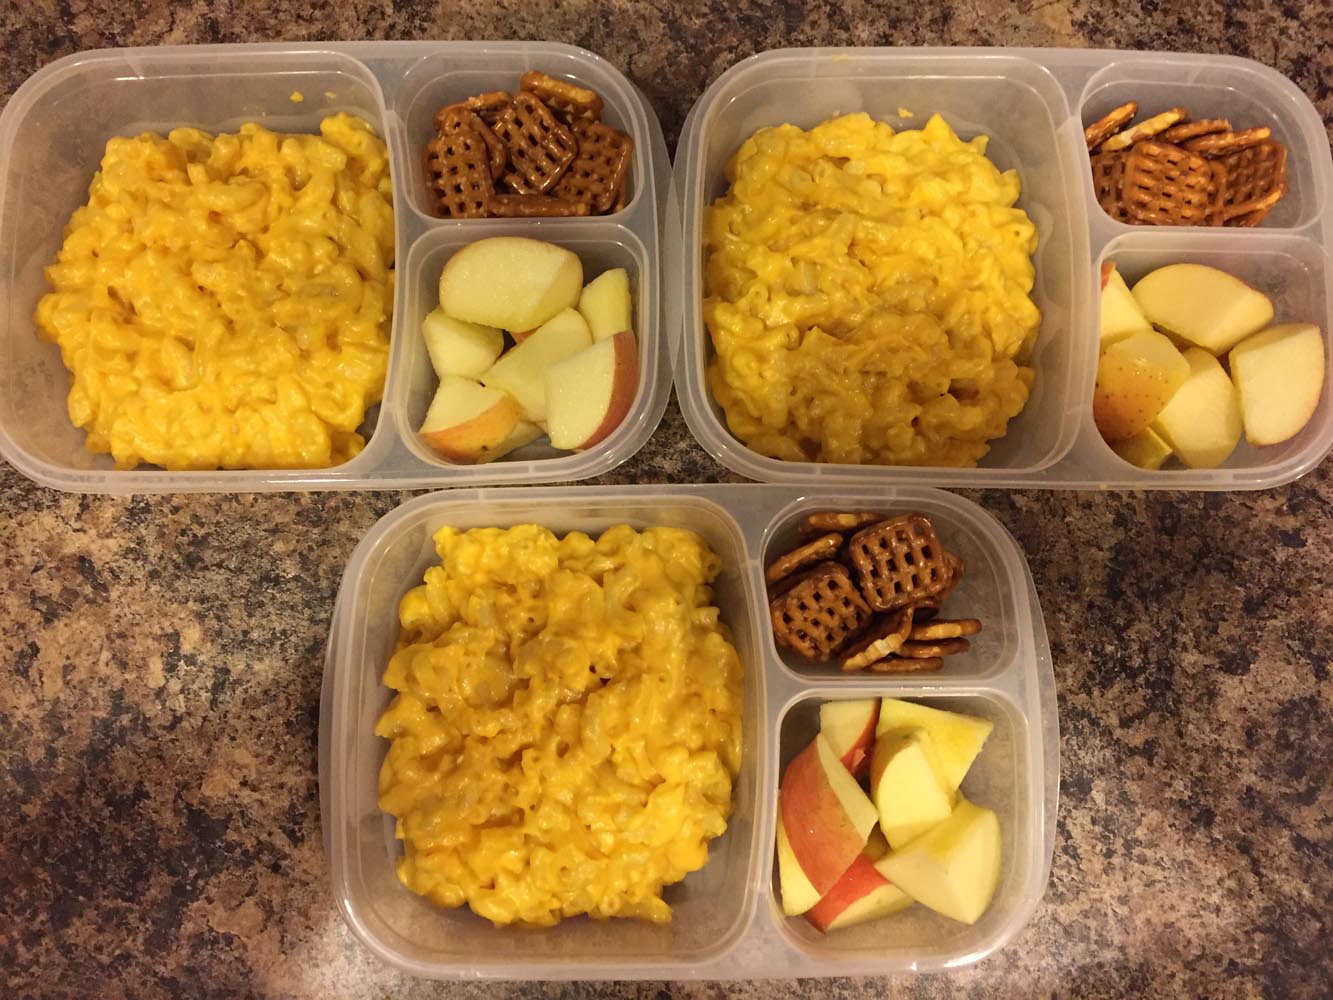 Mac and Cheese, Apples, and Pretzels